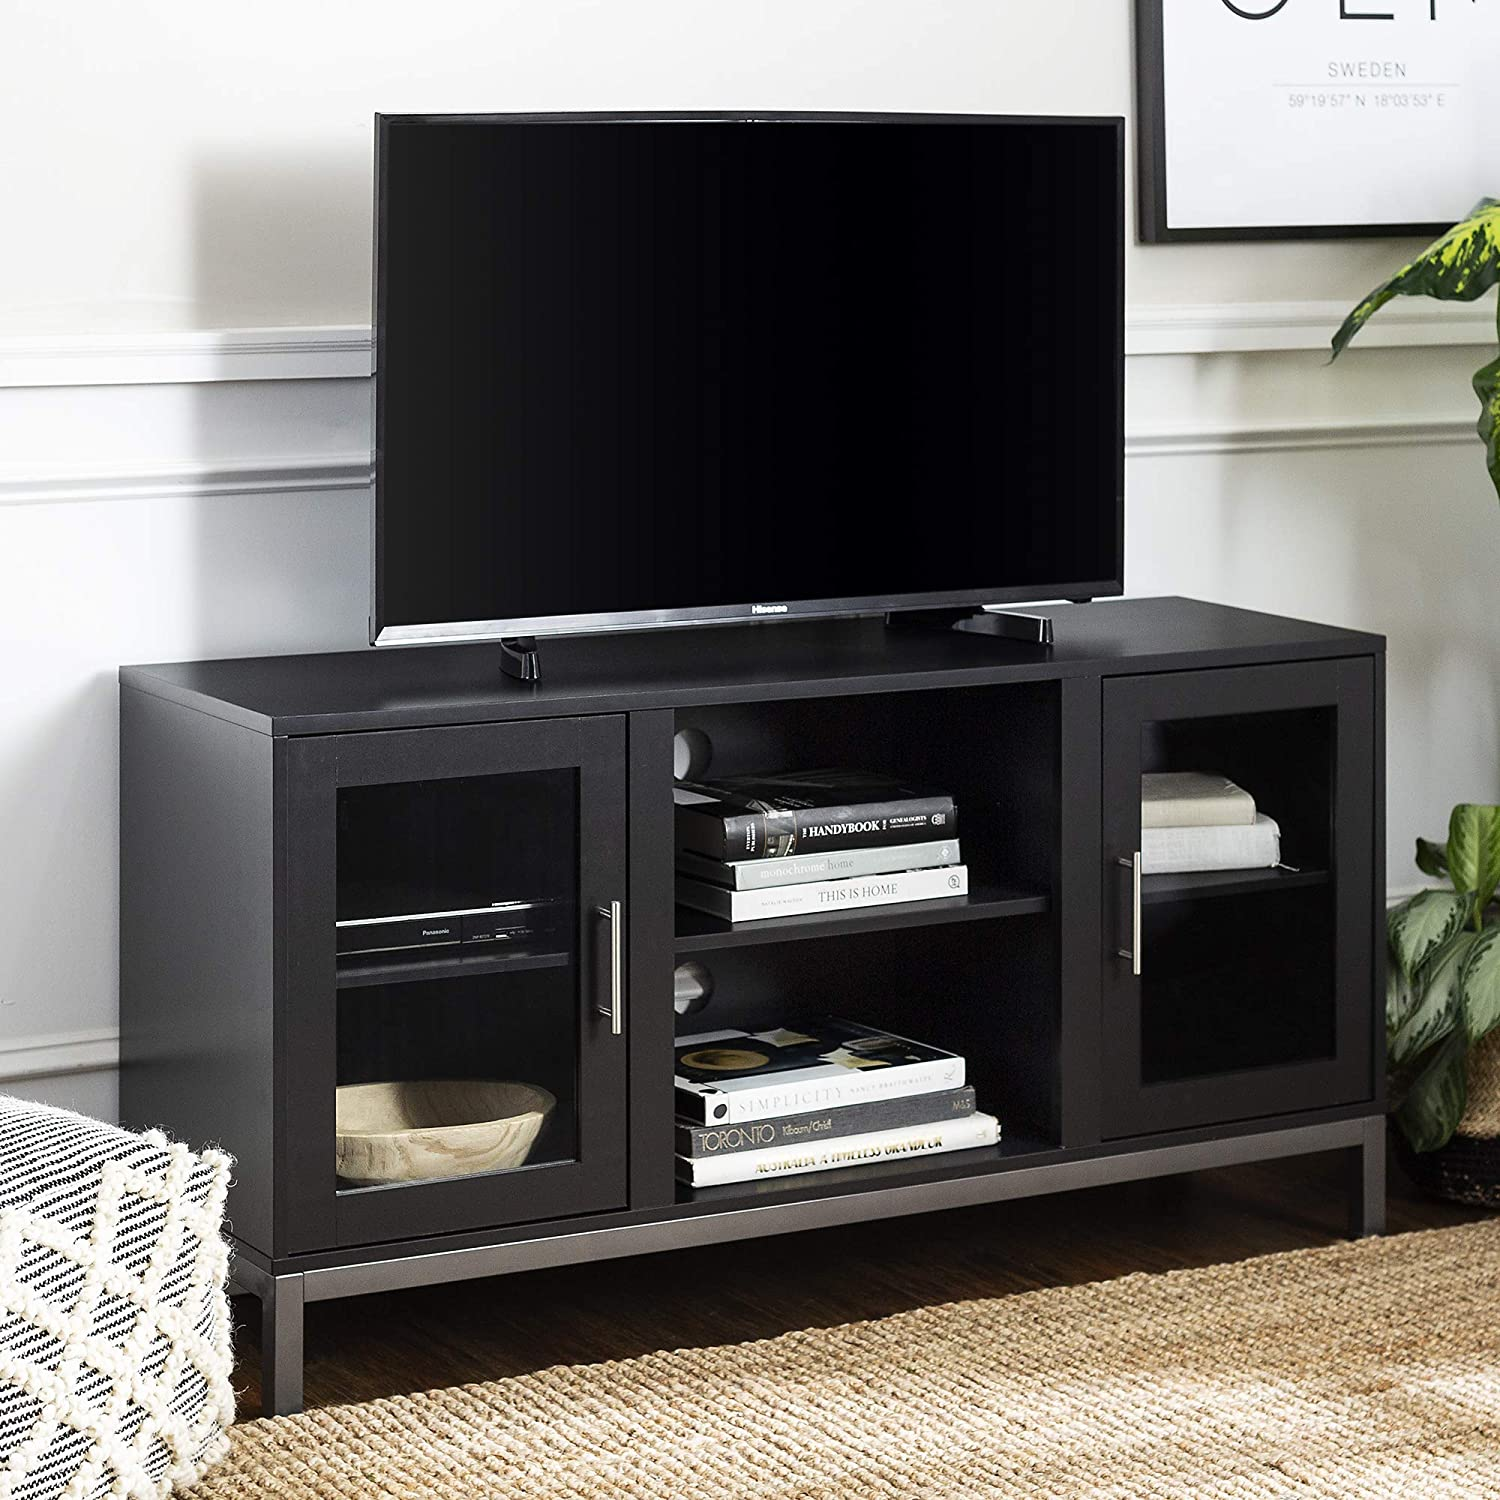 Walker Edison Furniture Az52av2dsb Modern Tv Stand With Storage For Tv S Up To 56 Living Room Storage Black Furniture Decor